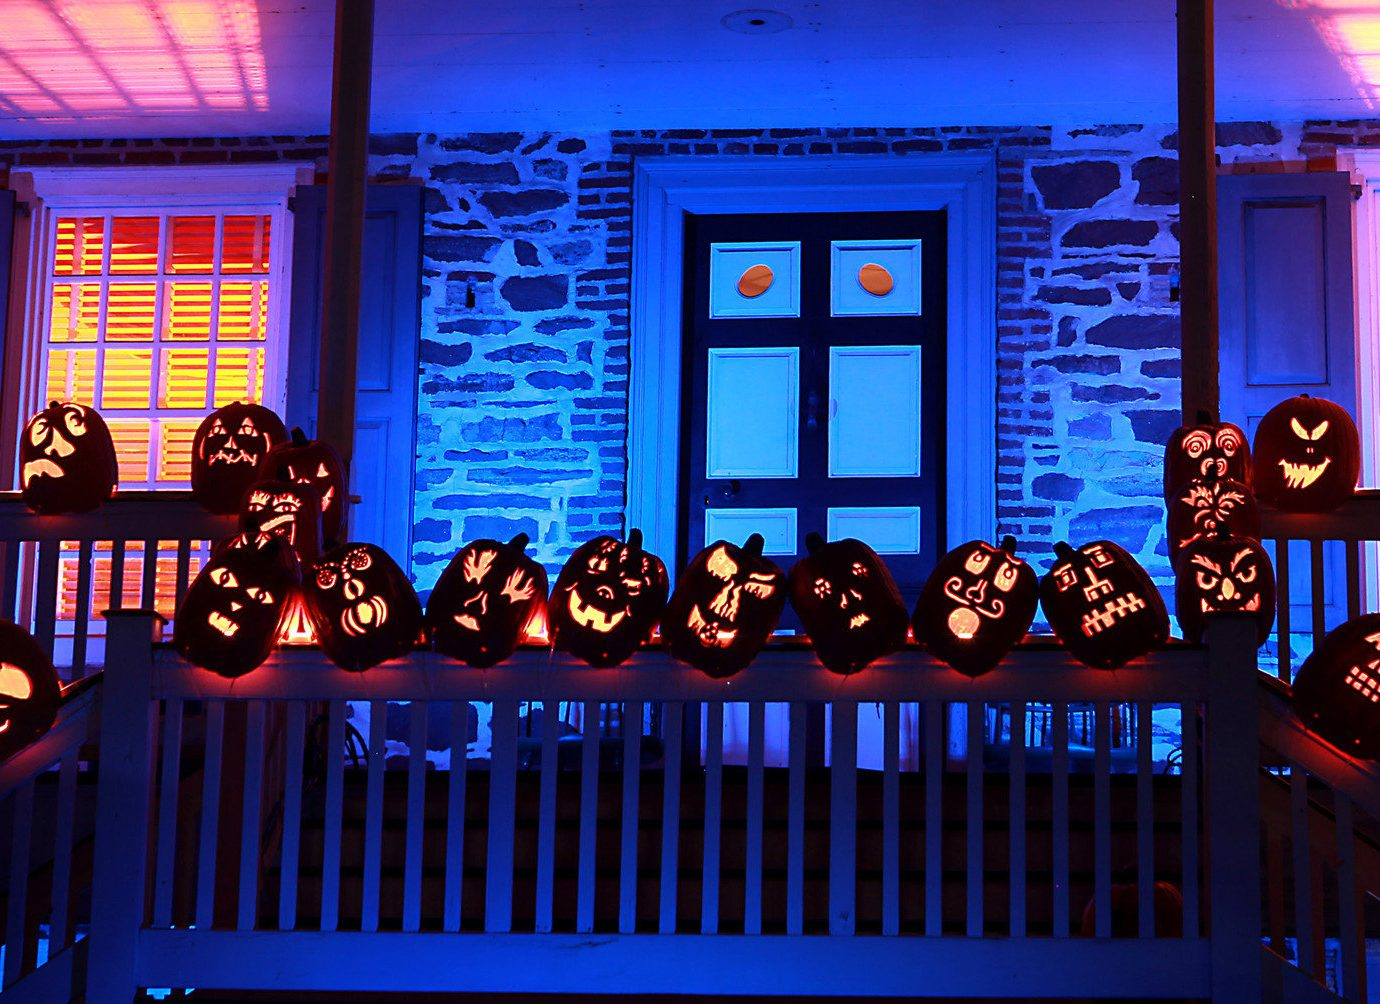 activities art festive halloween lights night pumpkins Trip Ideas stage musical theatre audience auditorium window